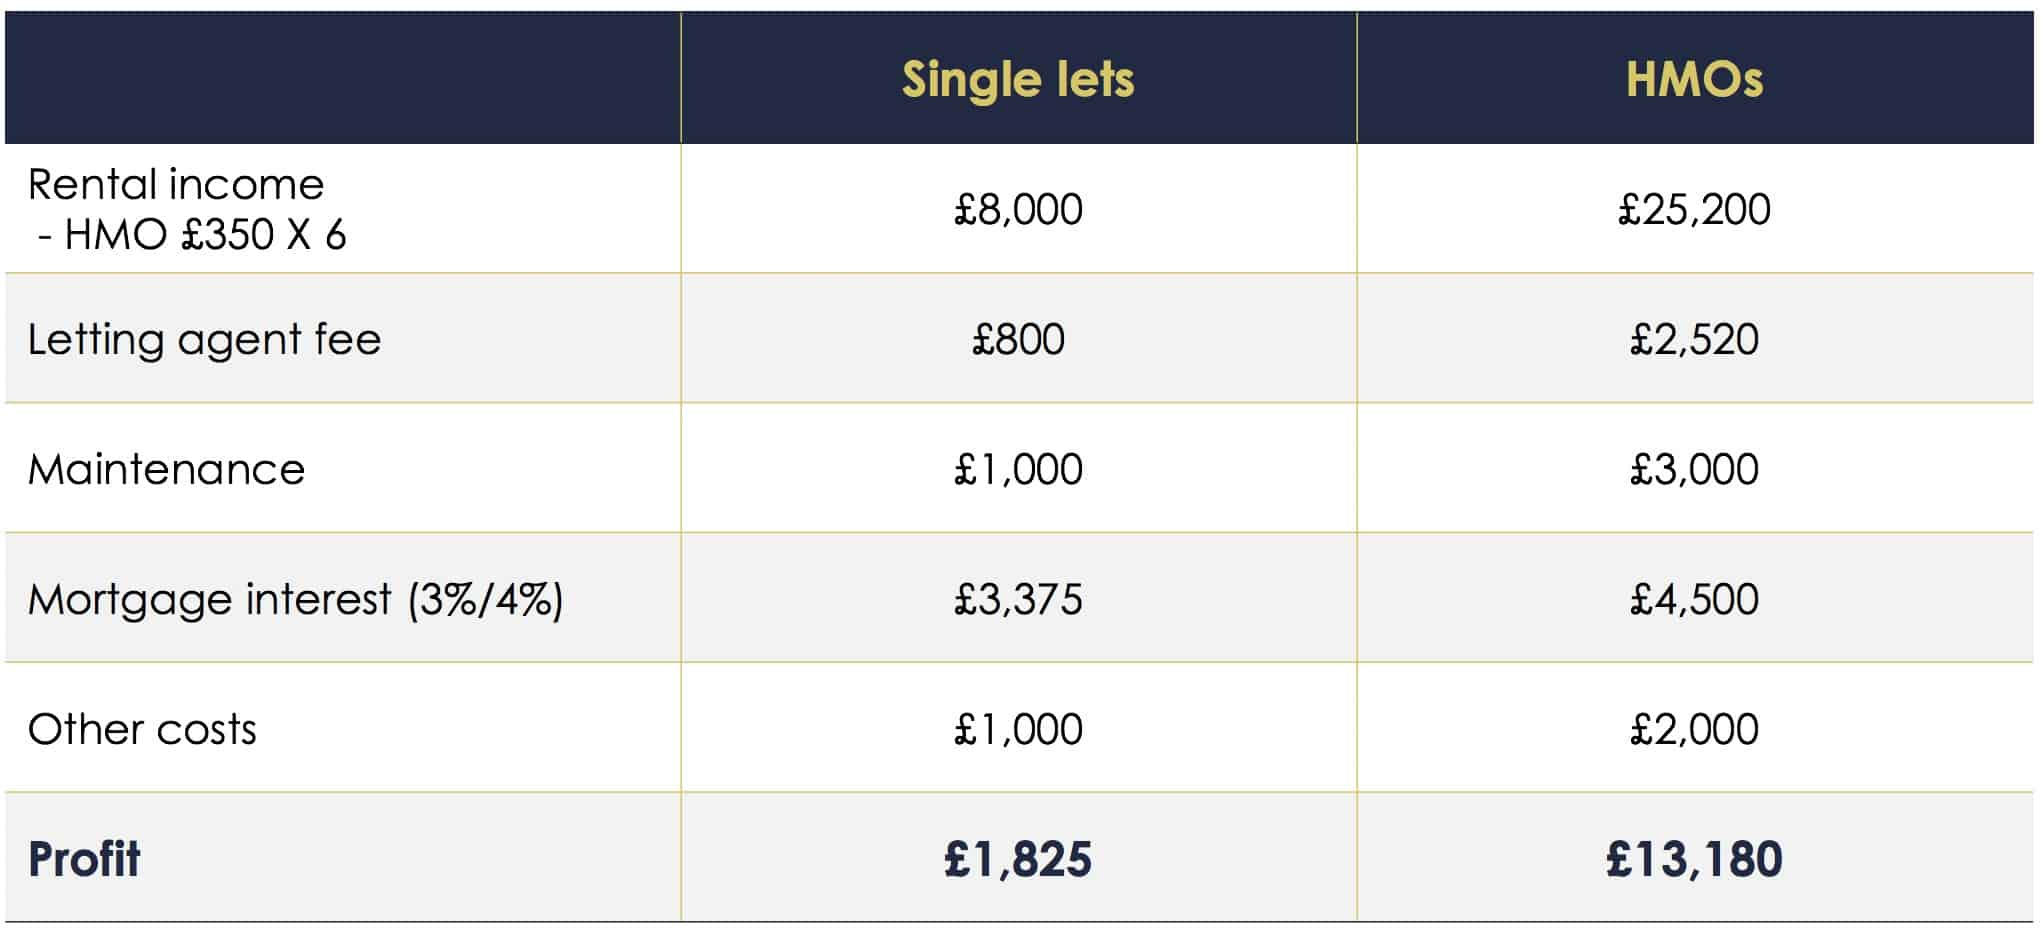 Rental income from single lets and HMOs